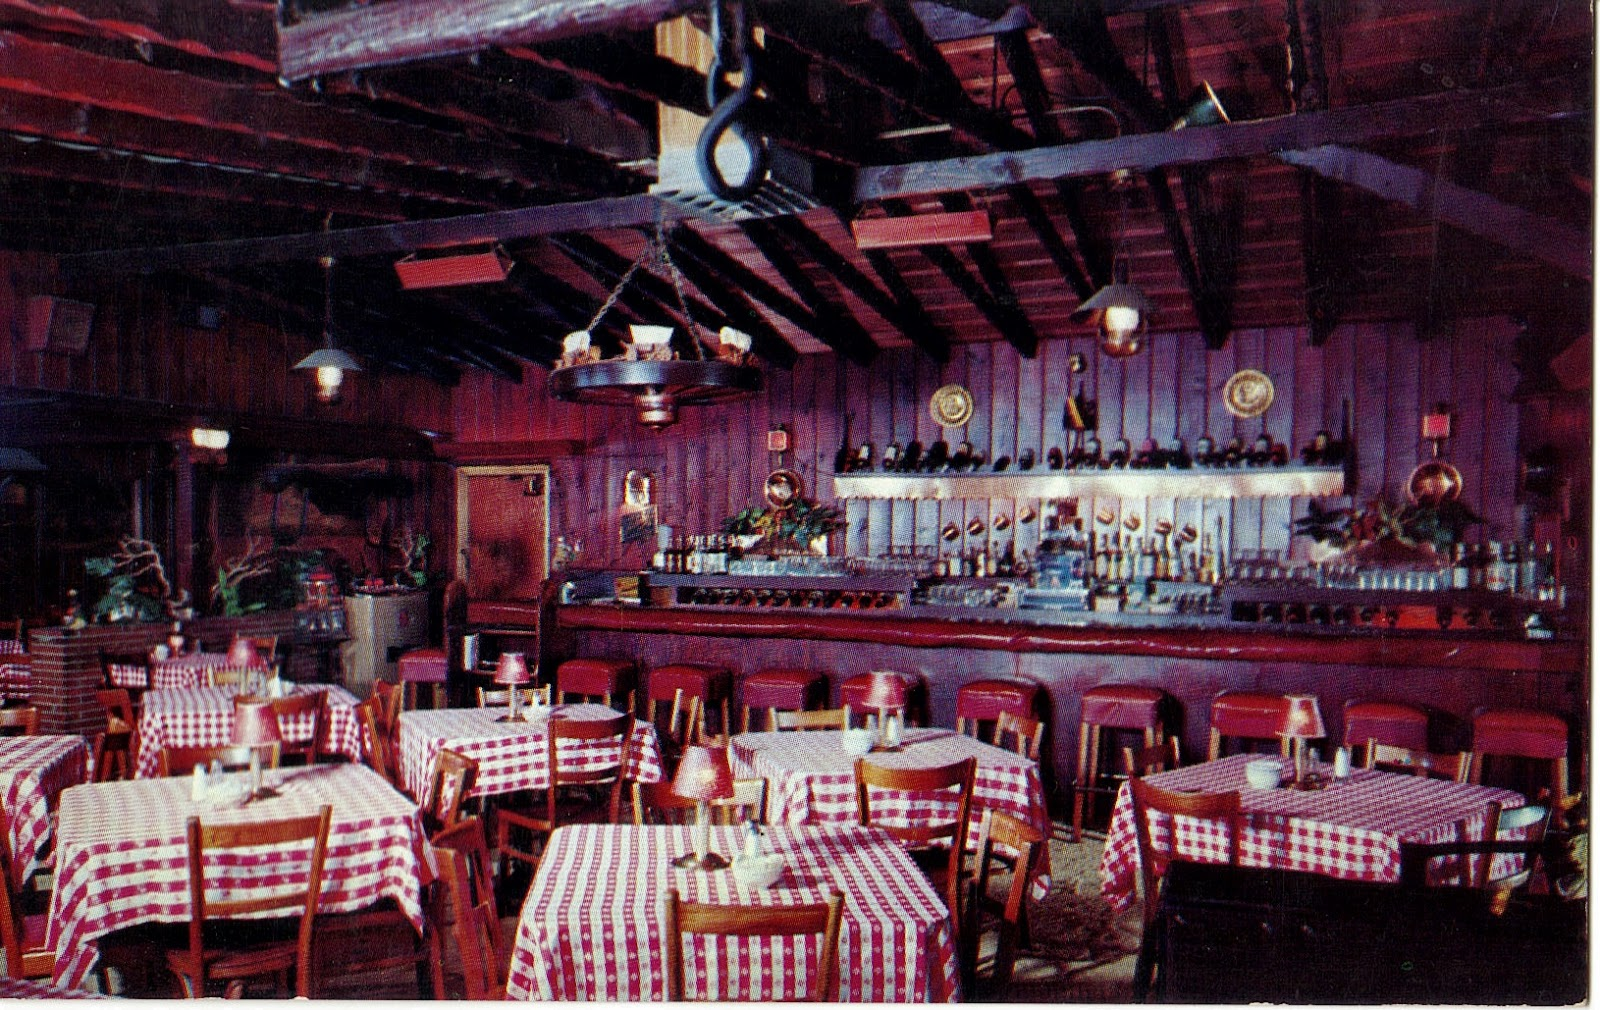 Red Barn Restaurant in Van Nuys Postcard - Living Room